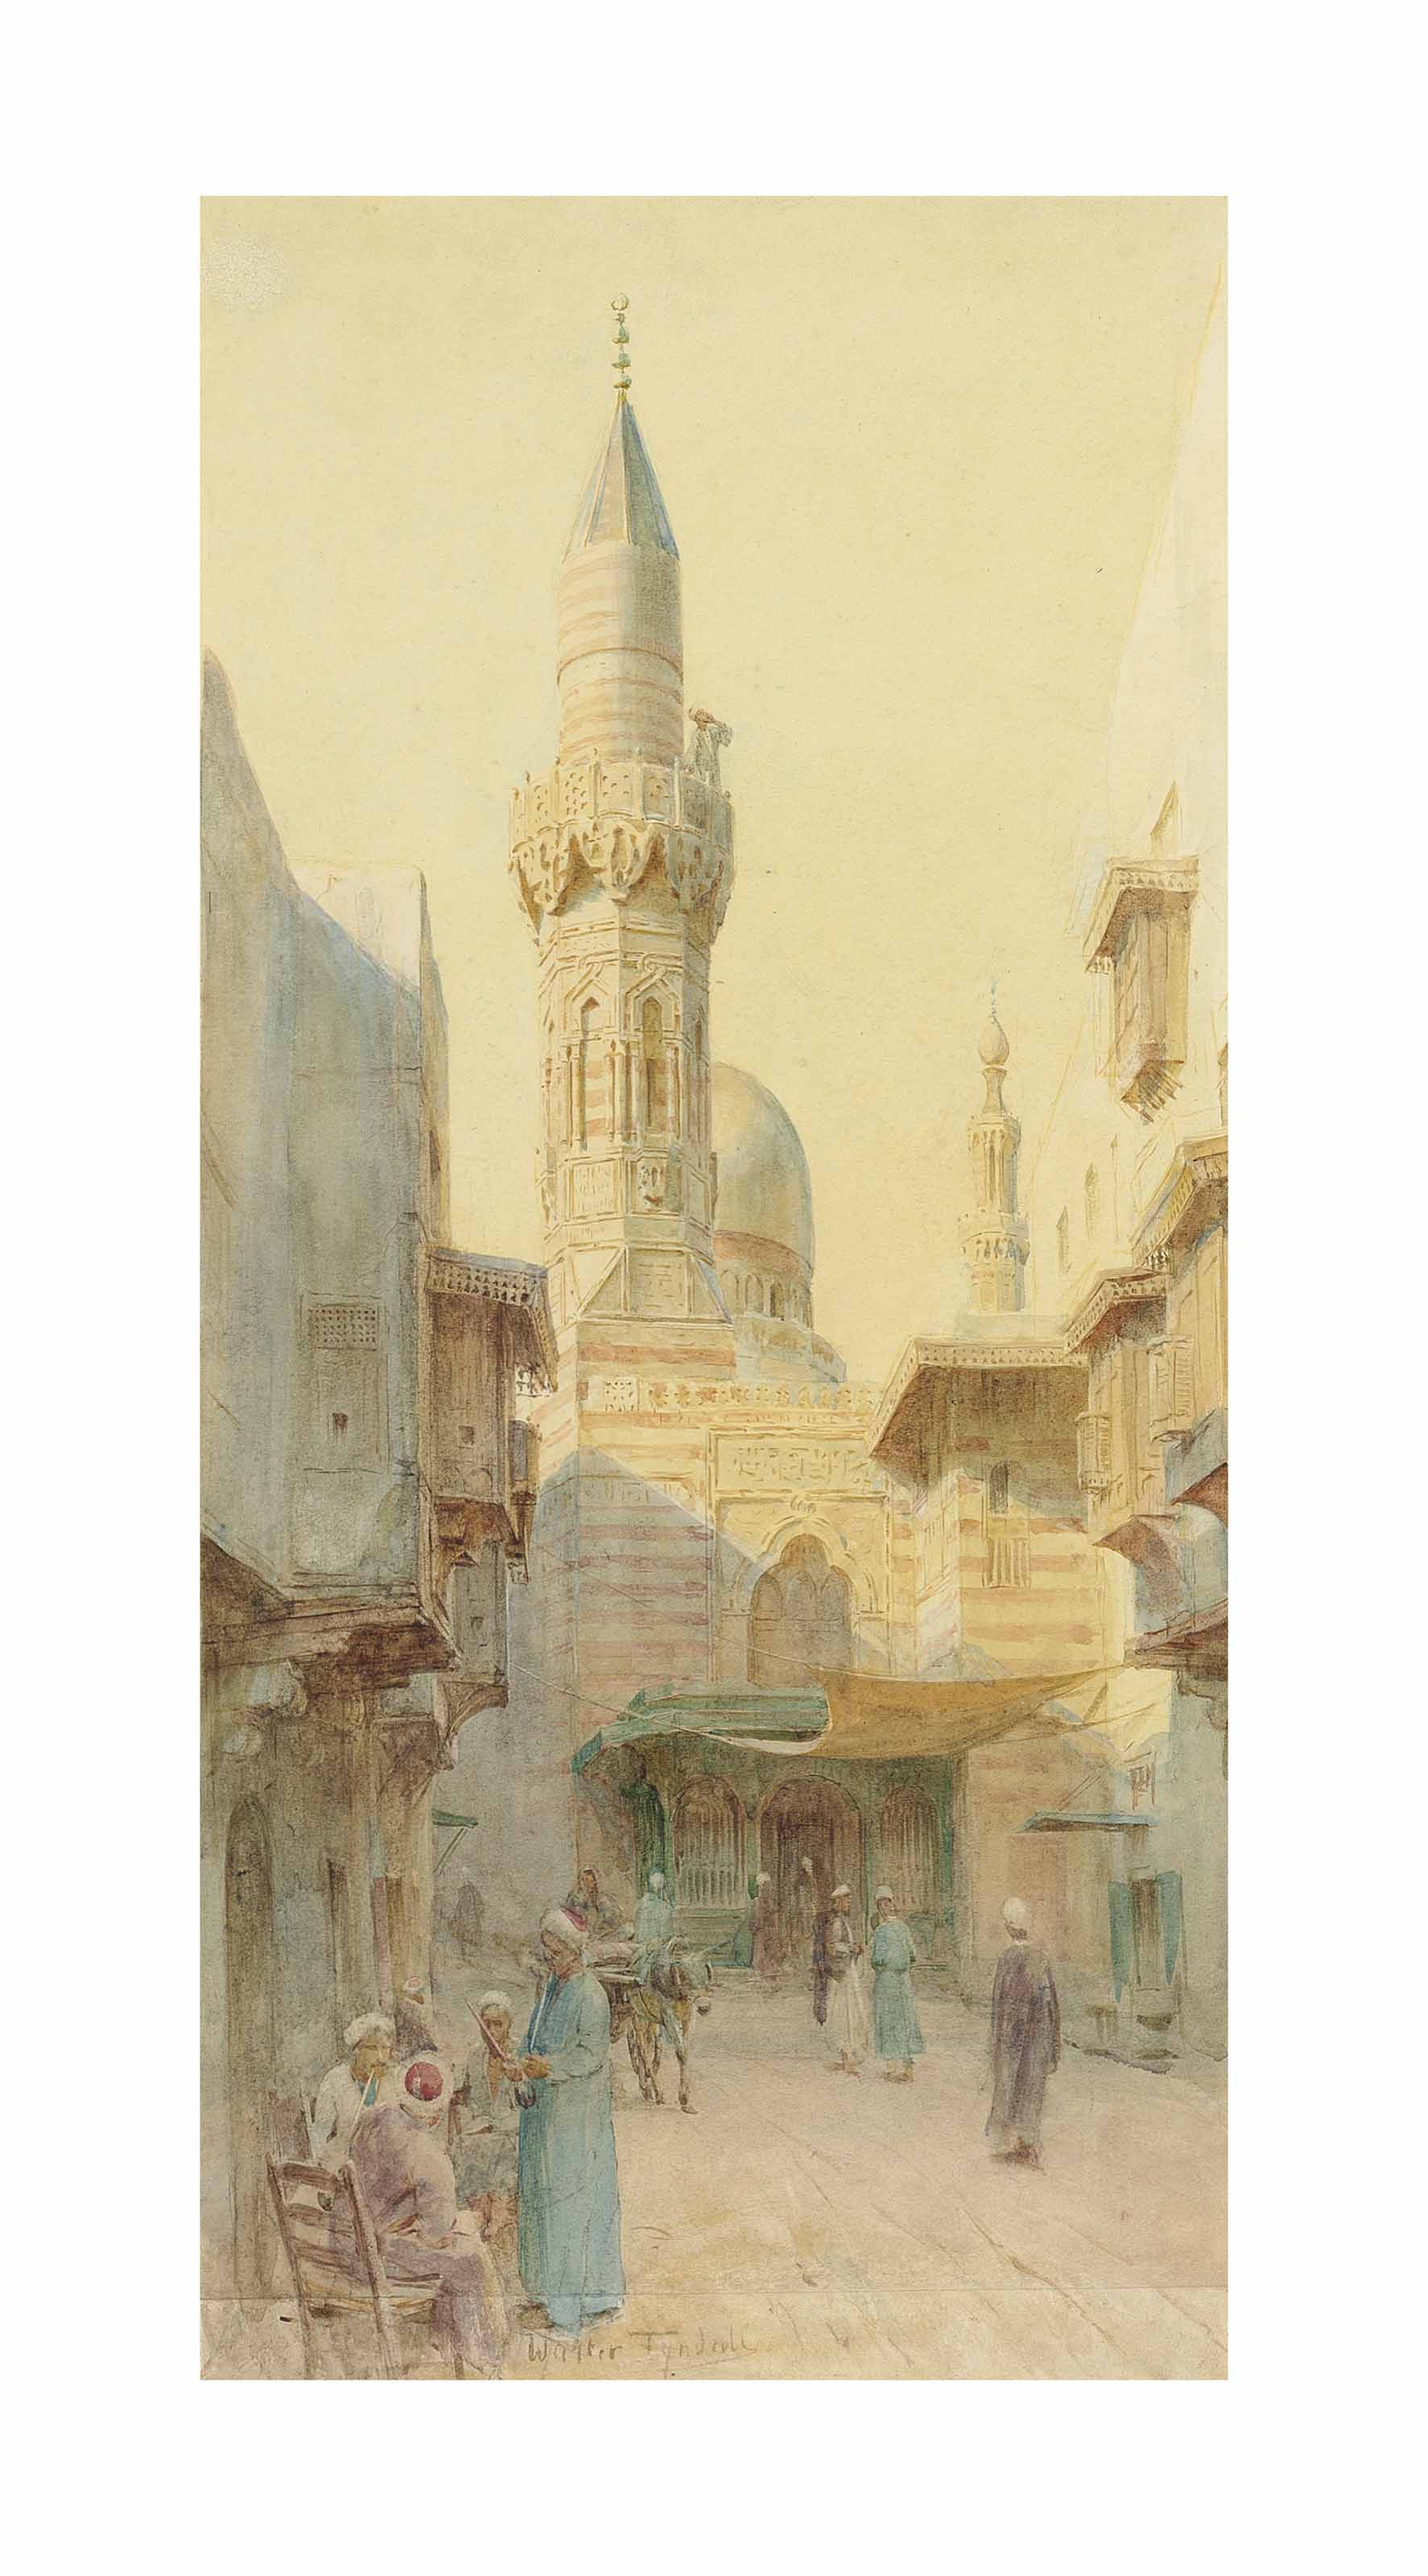 A bustling street in Cairo with a Minaret beyond